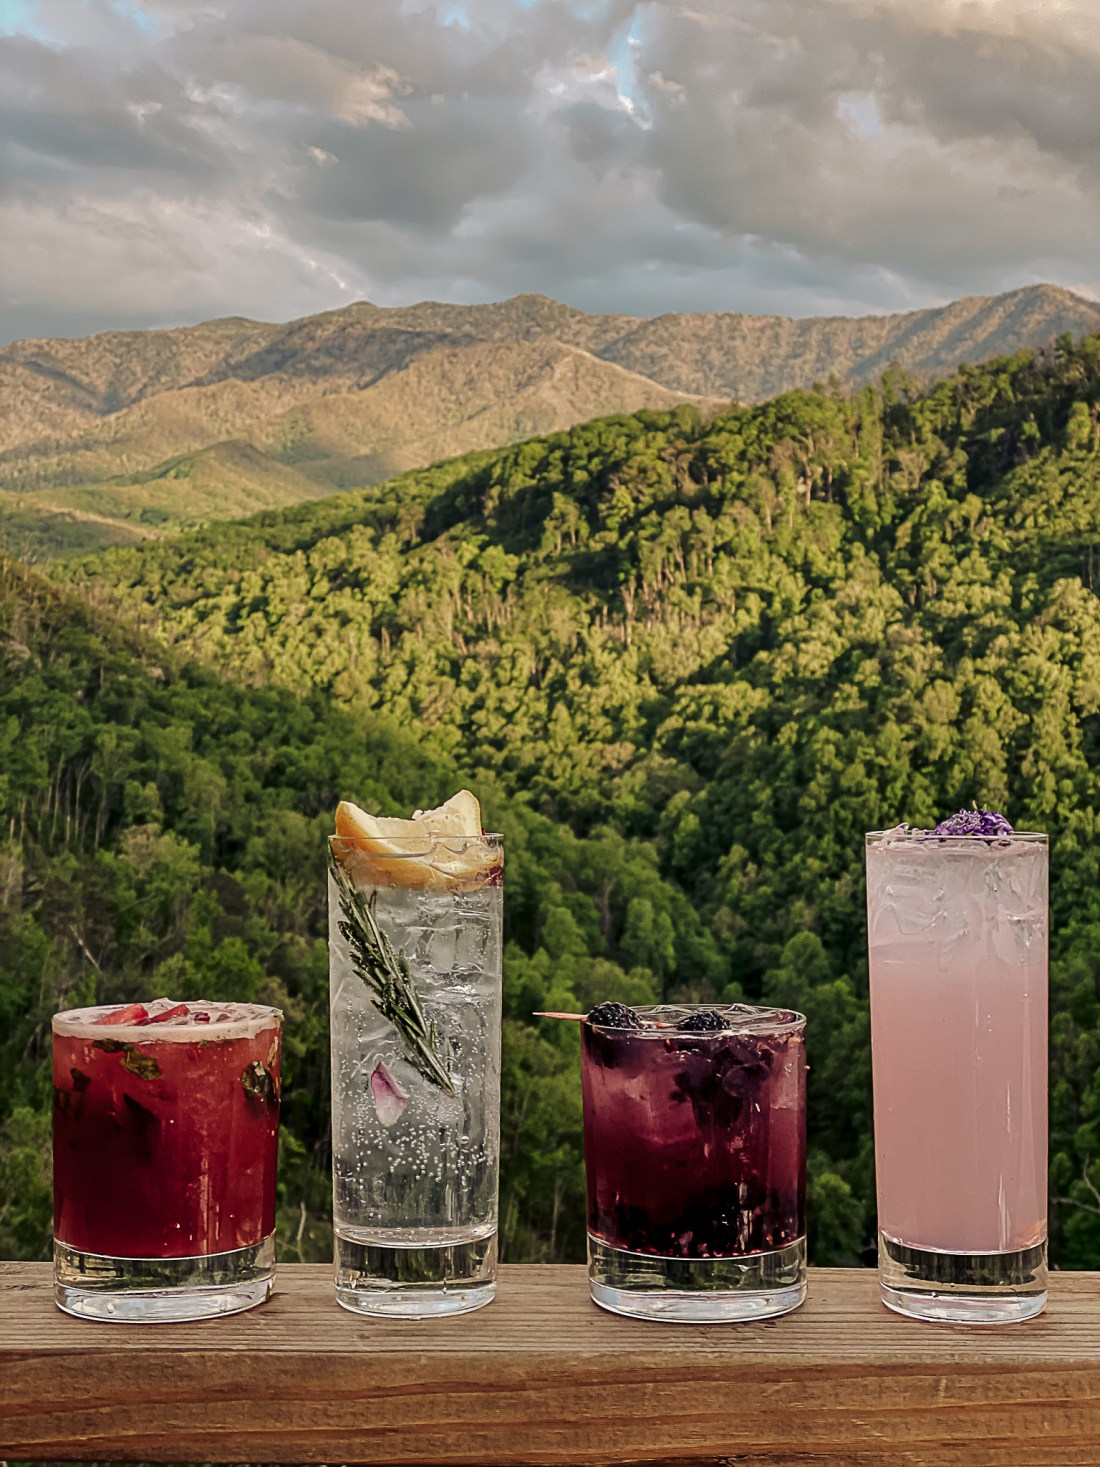 Gatlinburg Tennessee by popular Nashville travel blog, Modern Day Moguls: image of cocktail drinks  with the Smokey Mountains in the background.